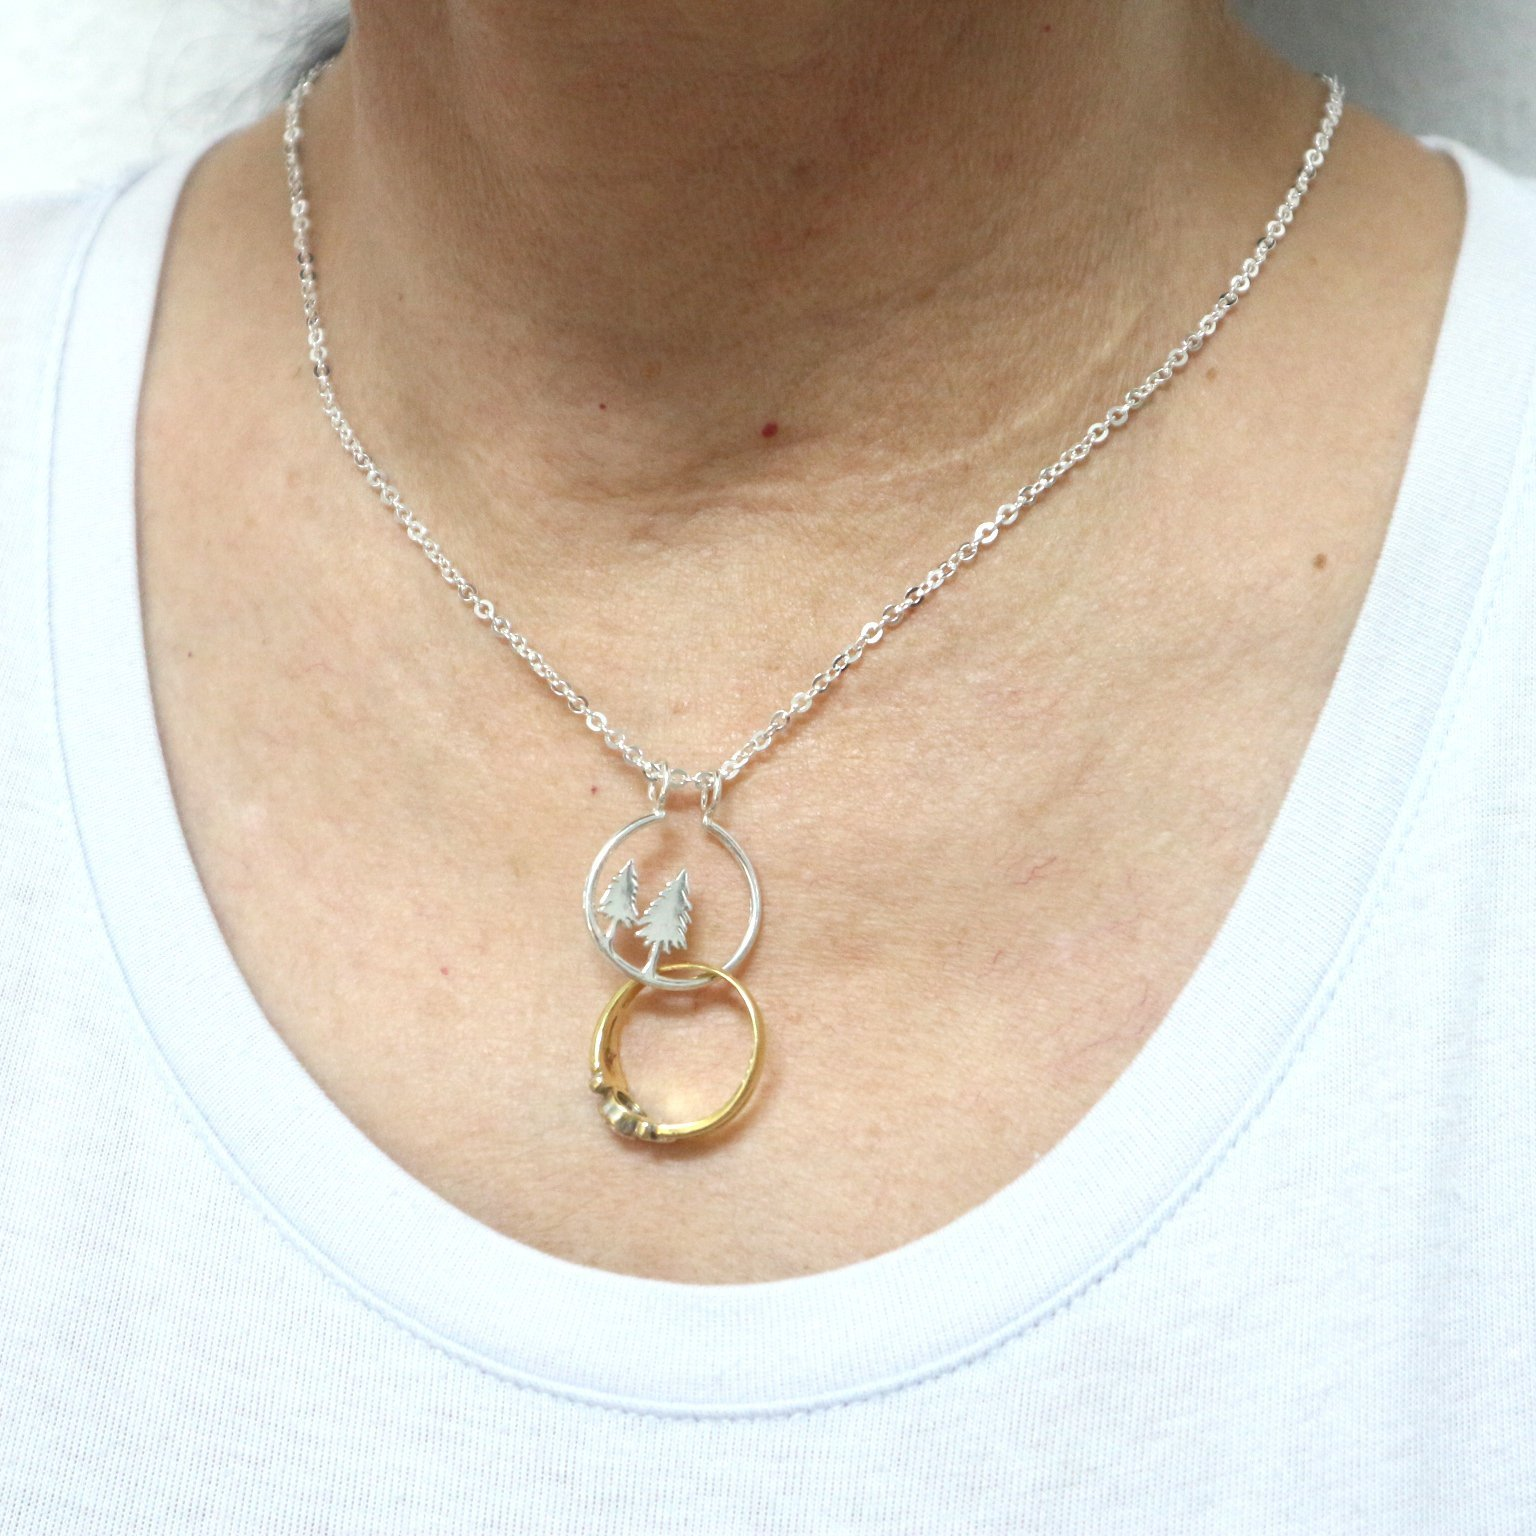 Silver Pine Tree Ring Holder Necklace image 2